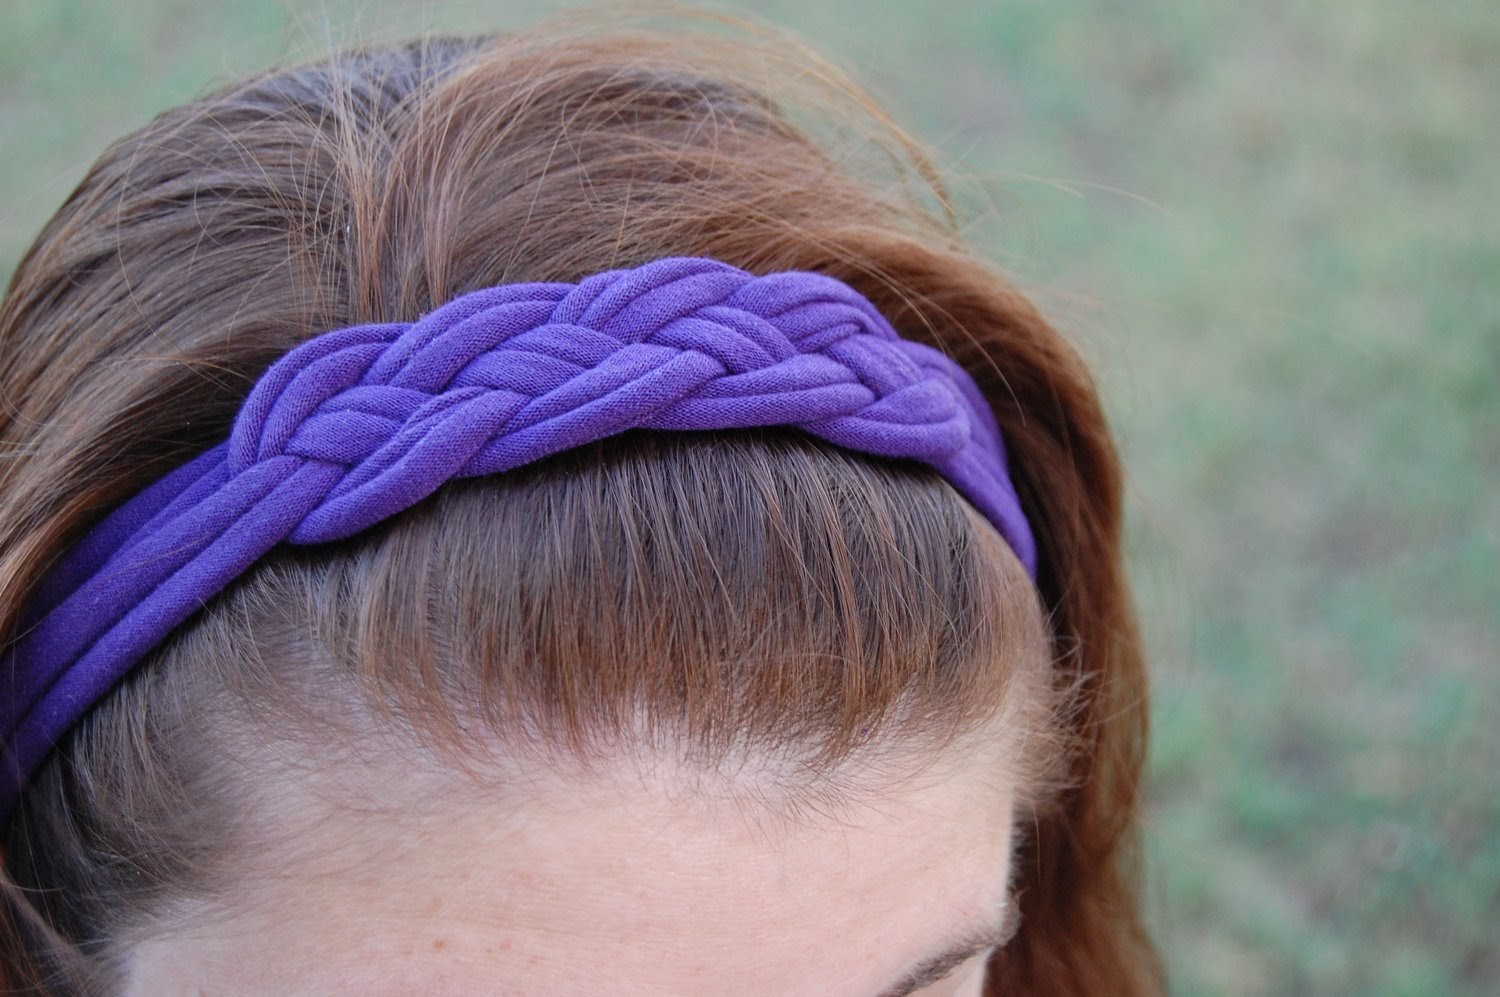 Handmade purple hairband made from an old t-shirt worn by a woman